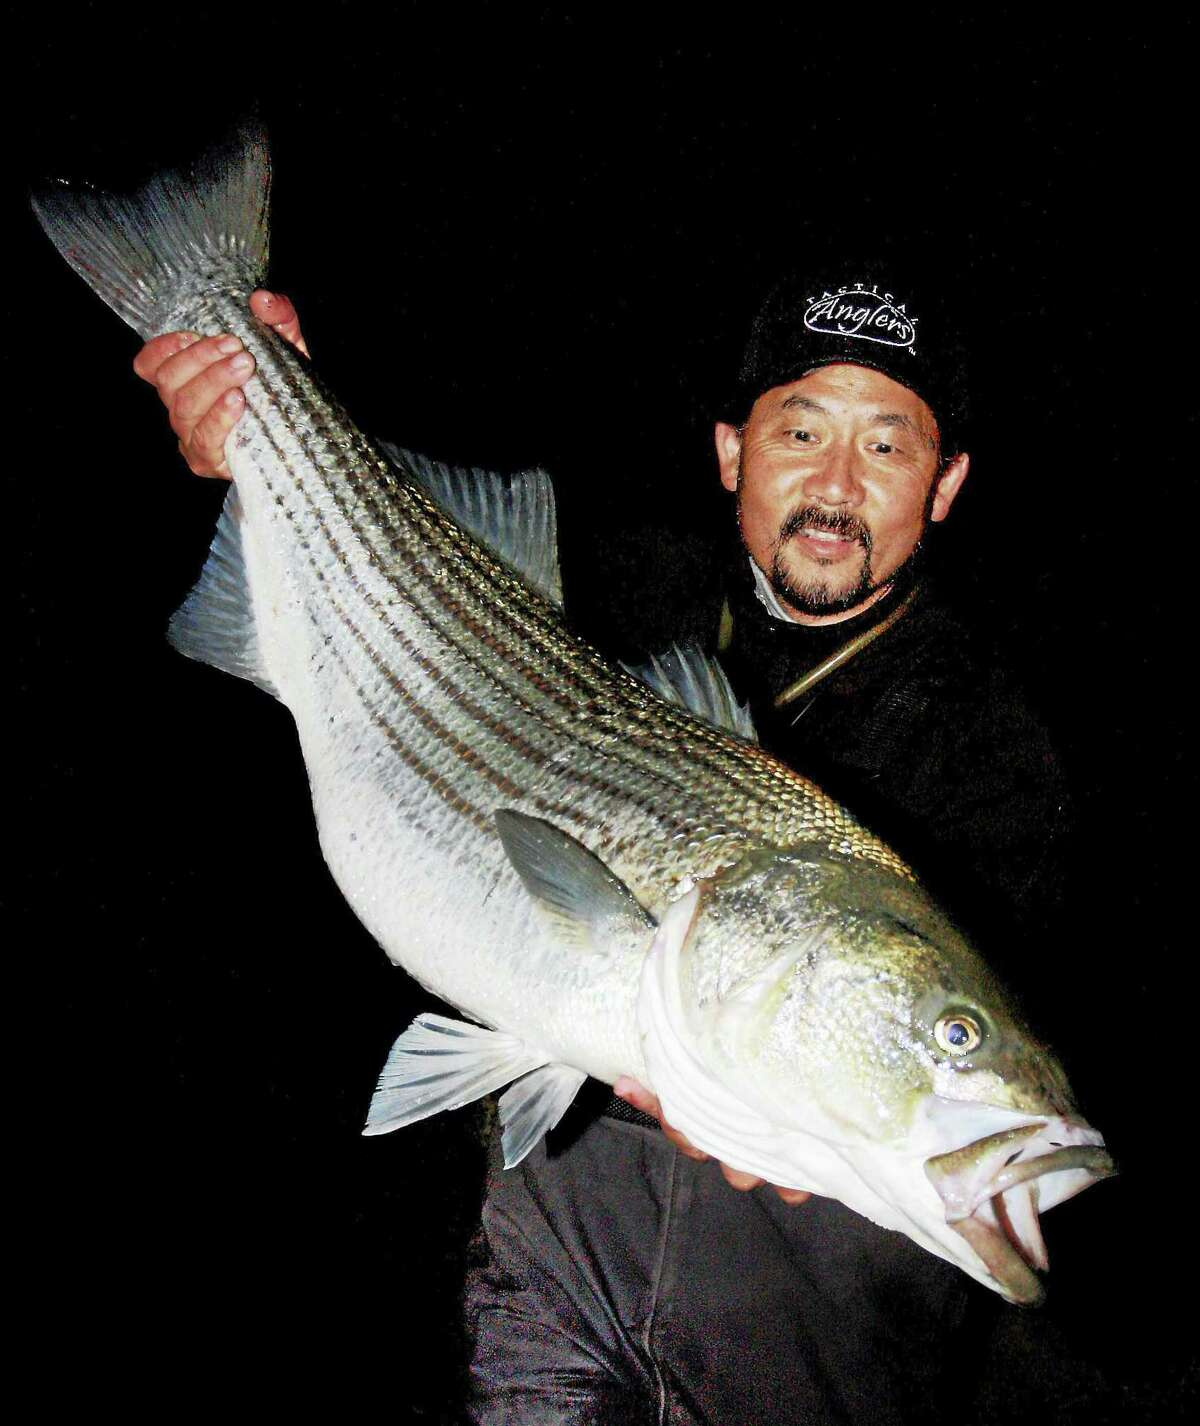 """Contributed photo For the first time, the show will feature free seminars and a booth with Alberto Knie (a/k/a """"Crazy Alberto"""") – a world-class extreme trophy game fish hunter and writer/fishing product designer who specializes in the art of Trophy Fishing and Conservation."""